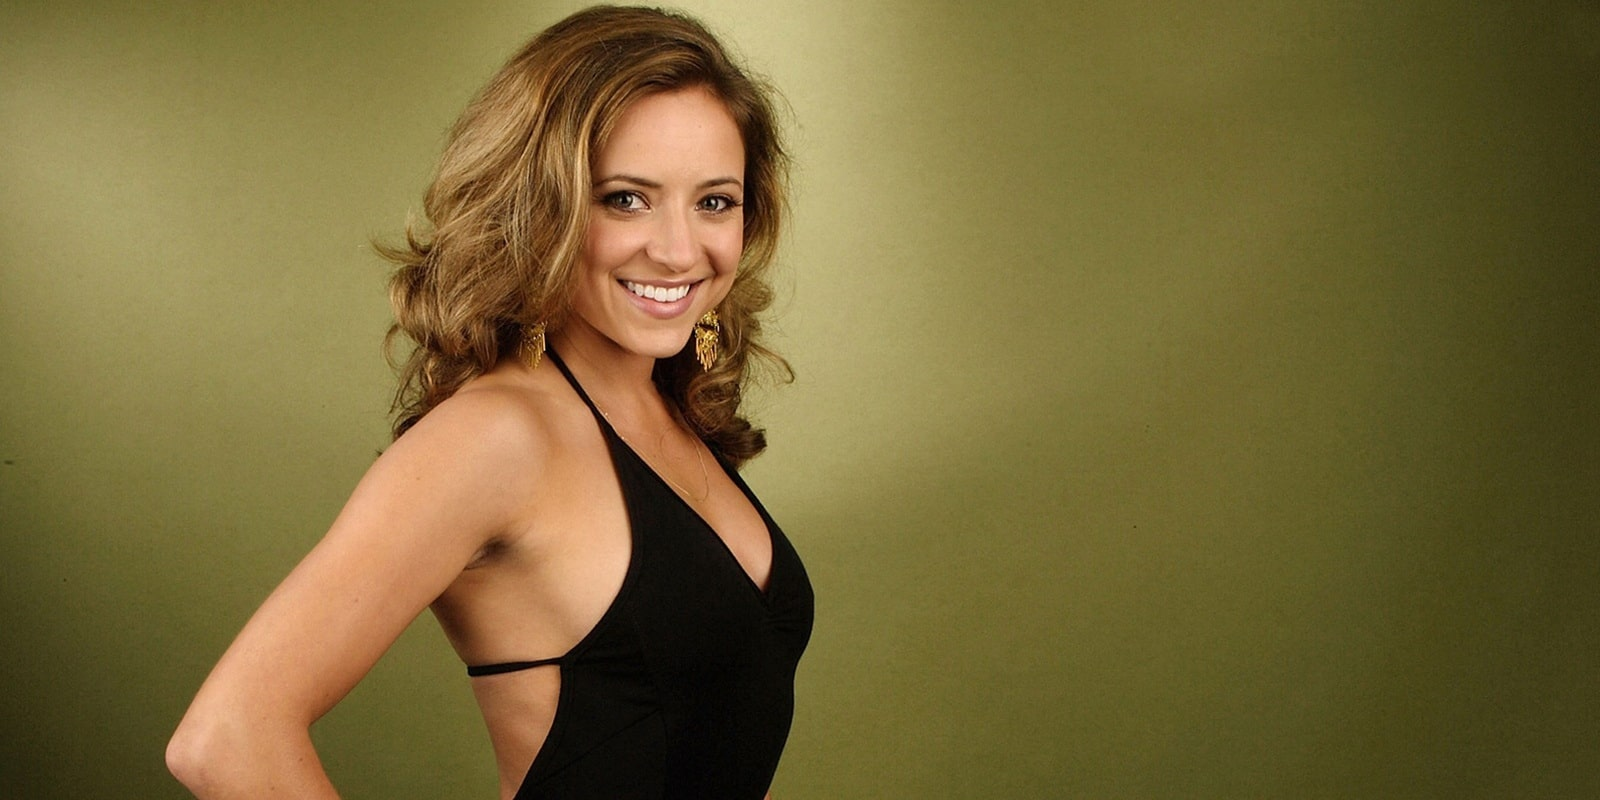 christine lakin net worth 2018 amazing facts you need to know